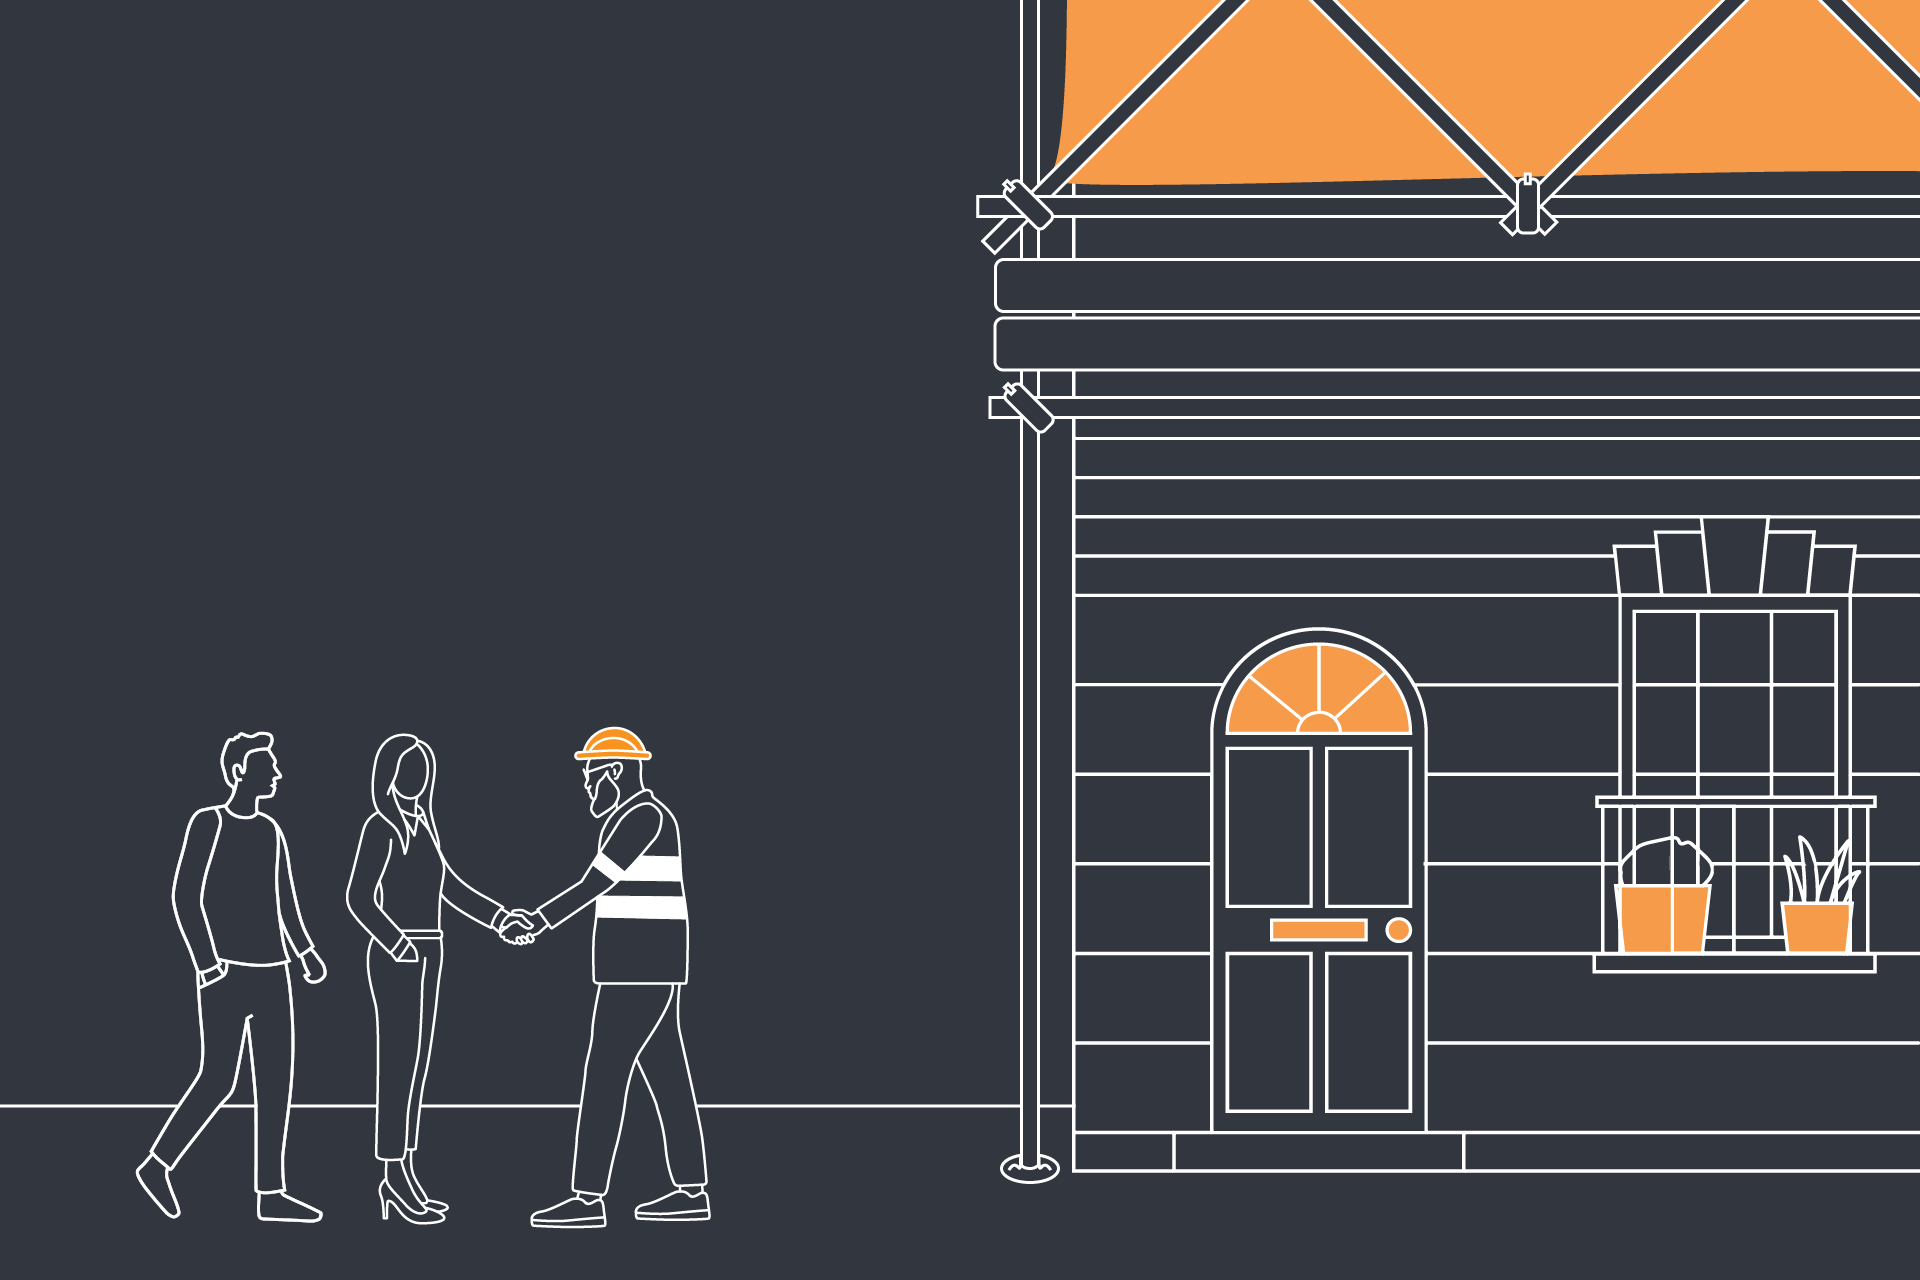 An illustration of a man and woman shaking hands with a builder who is working on their home.